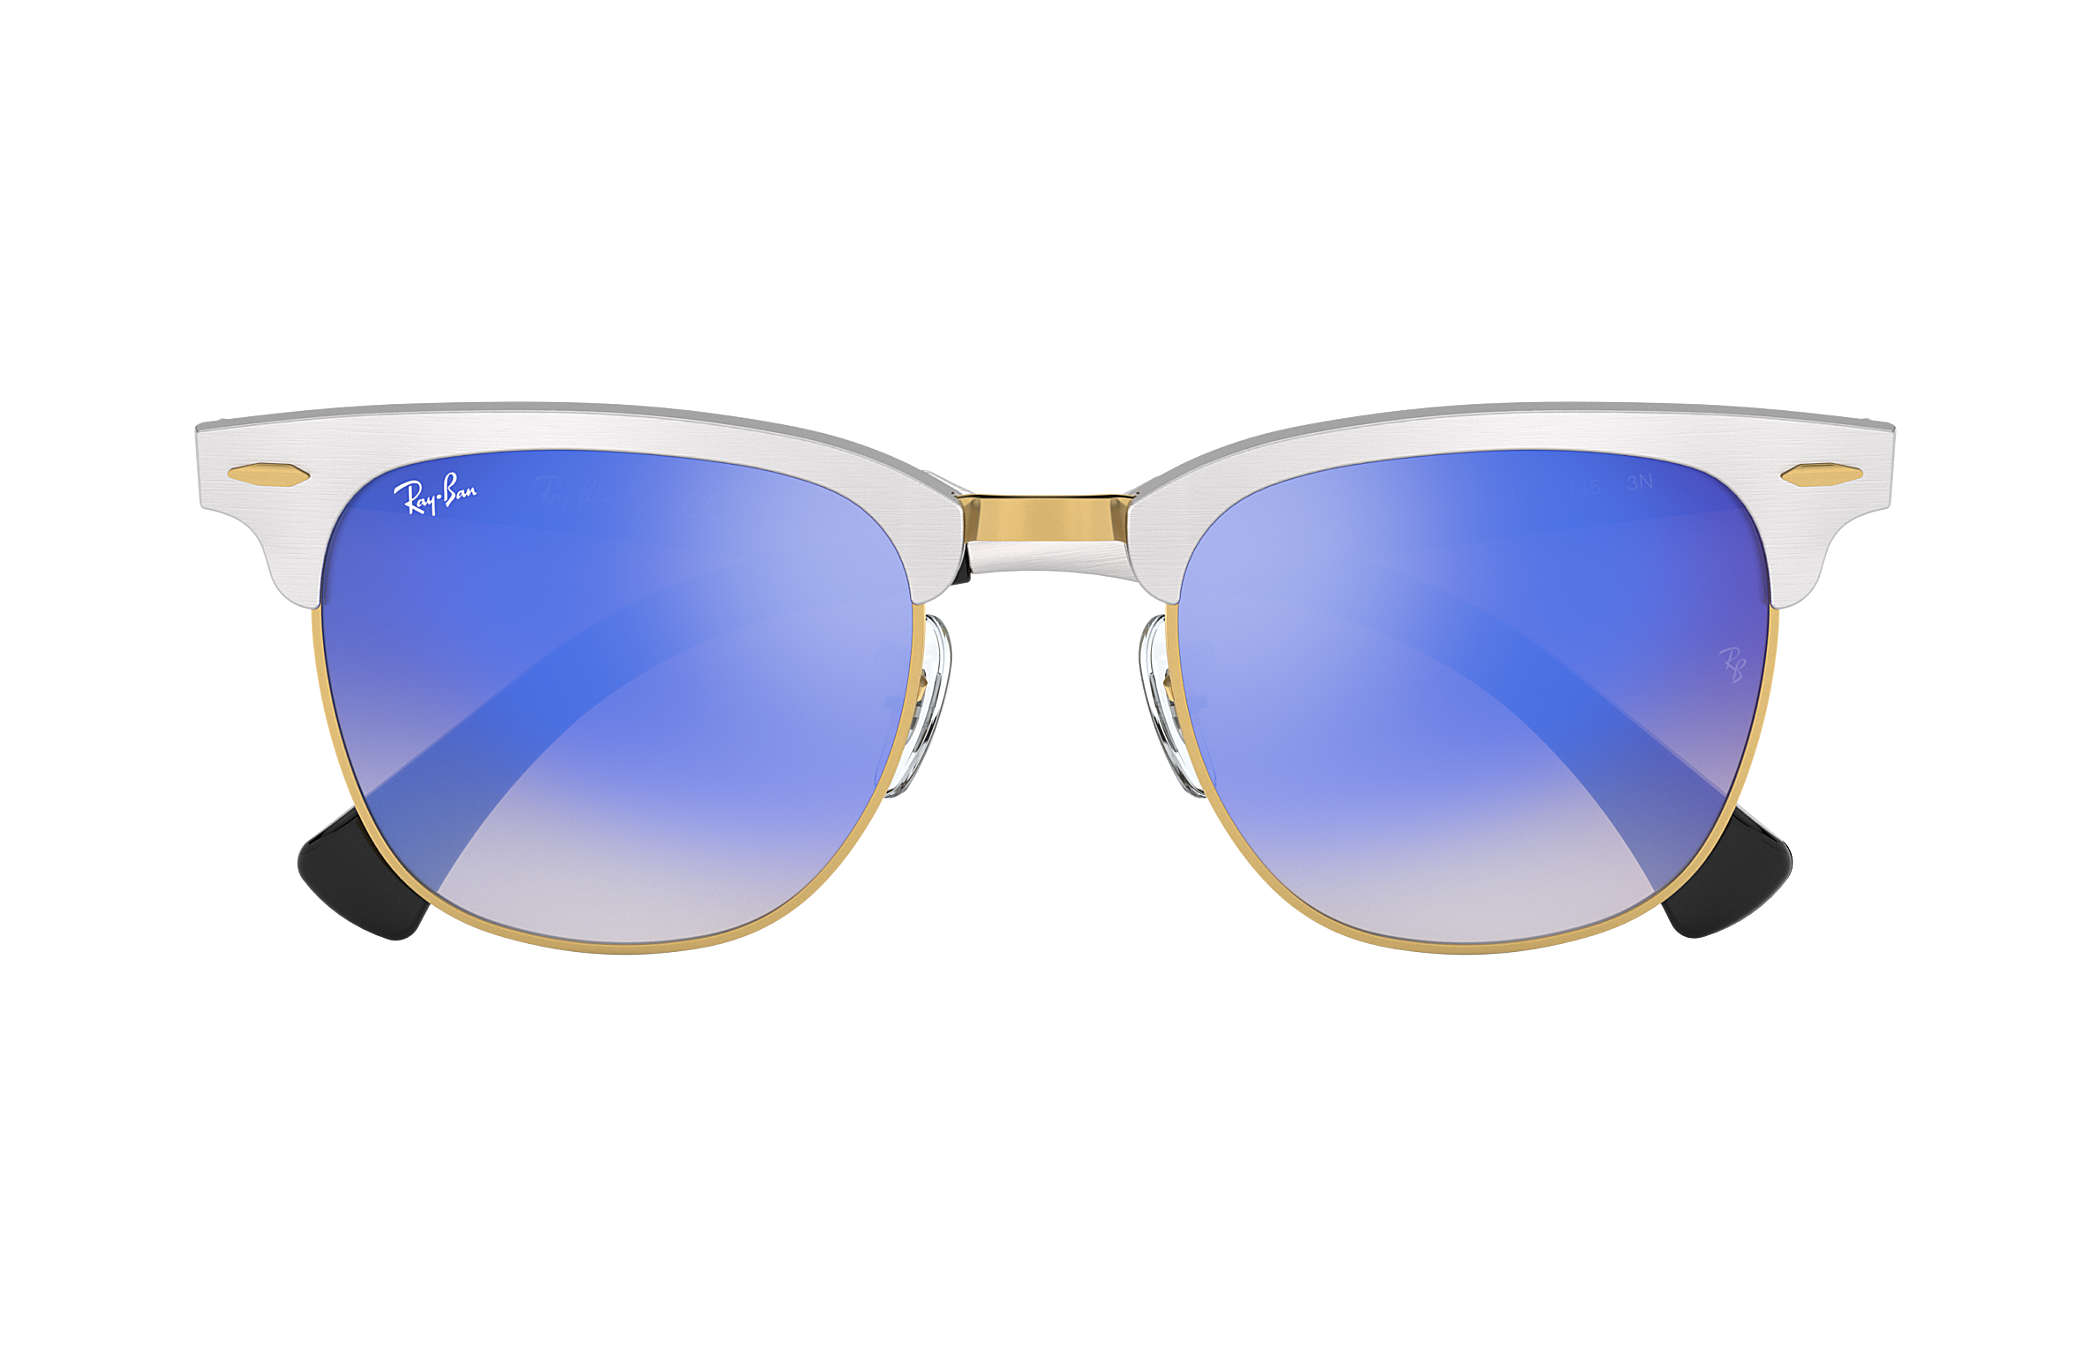 ... Ray-Ban 0RB3507-CLUBMASTER ALUMINUM FLASH LENSES GRADIENT Silver SUN ... 2c3b7658a5